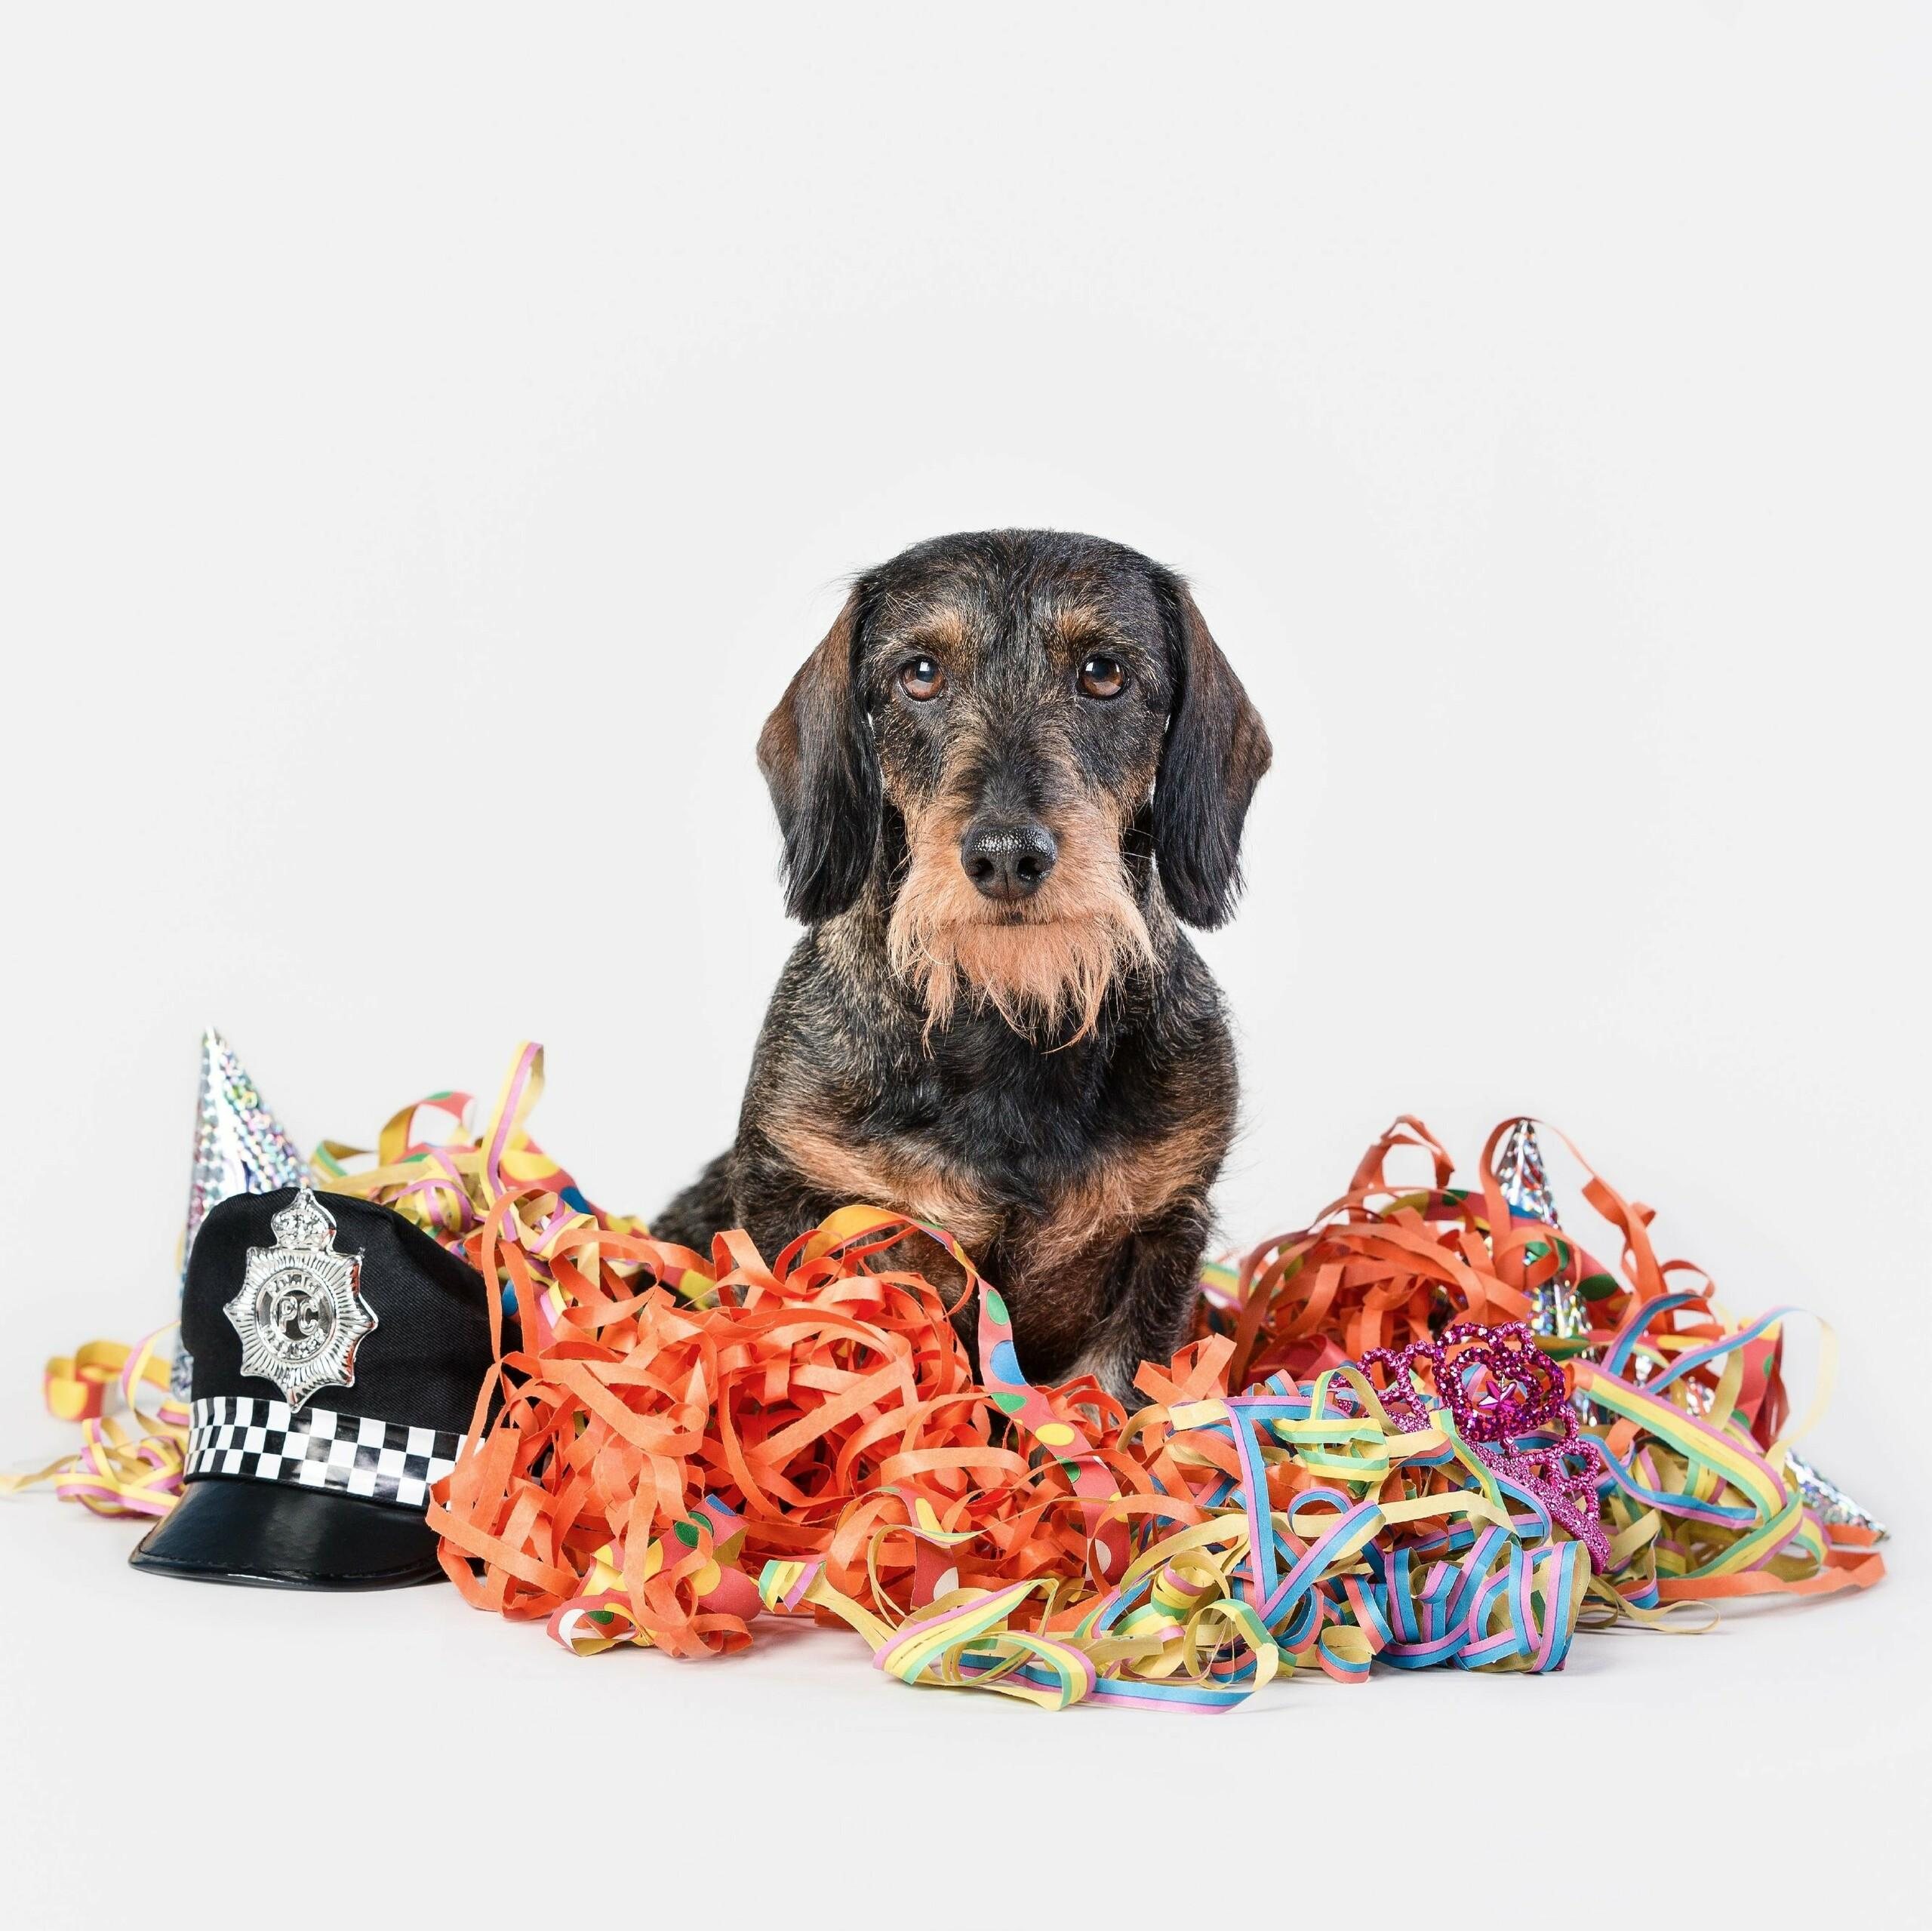 Please do not take dogs to carnival parades or loud parties.